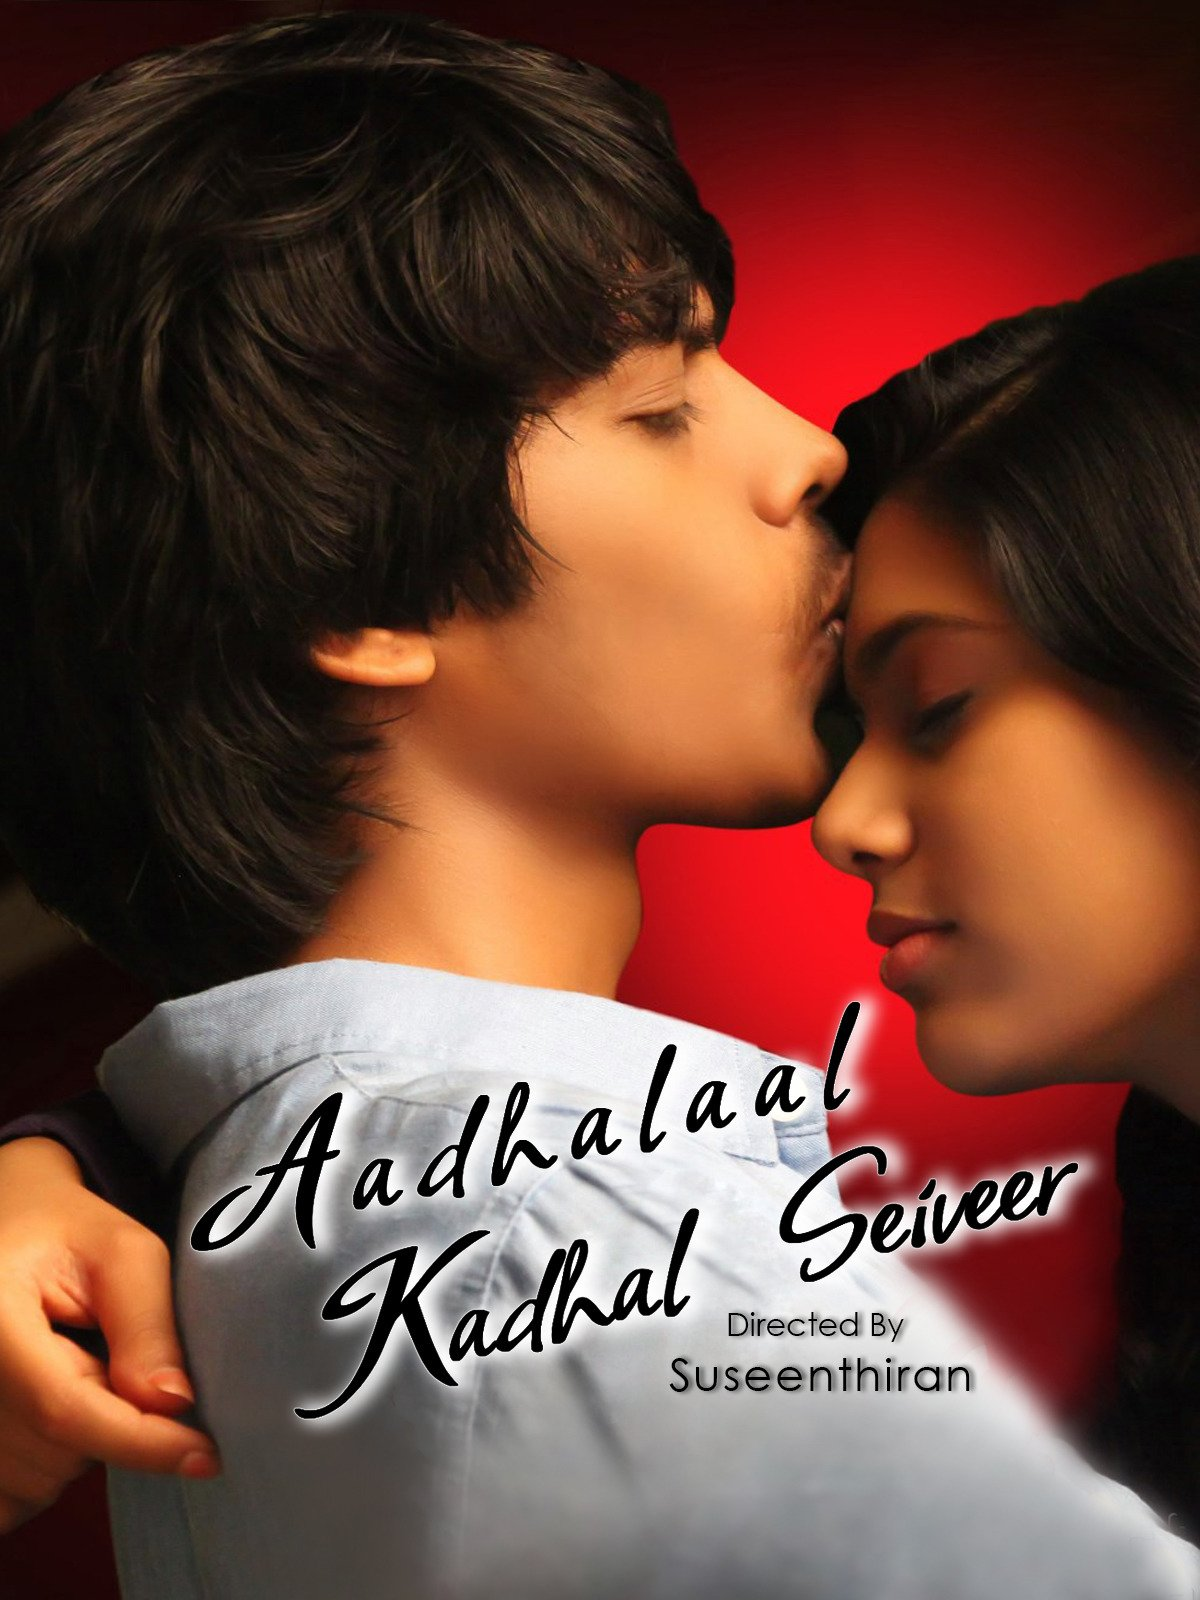 Aadhalal Kadhal Seiveer on Amazon Prime Instant Video UK